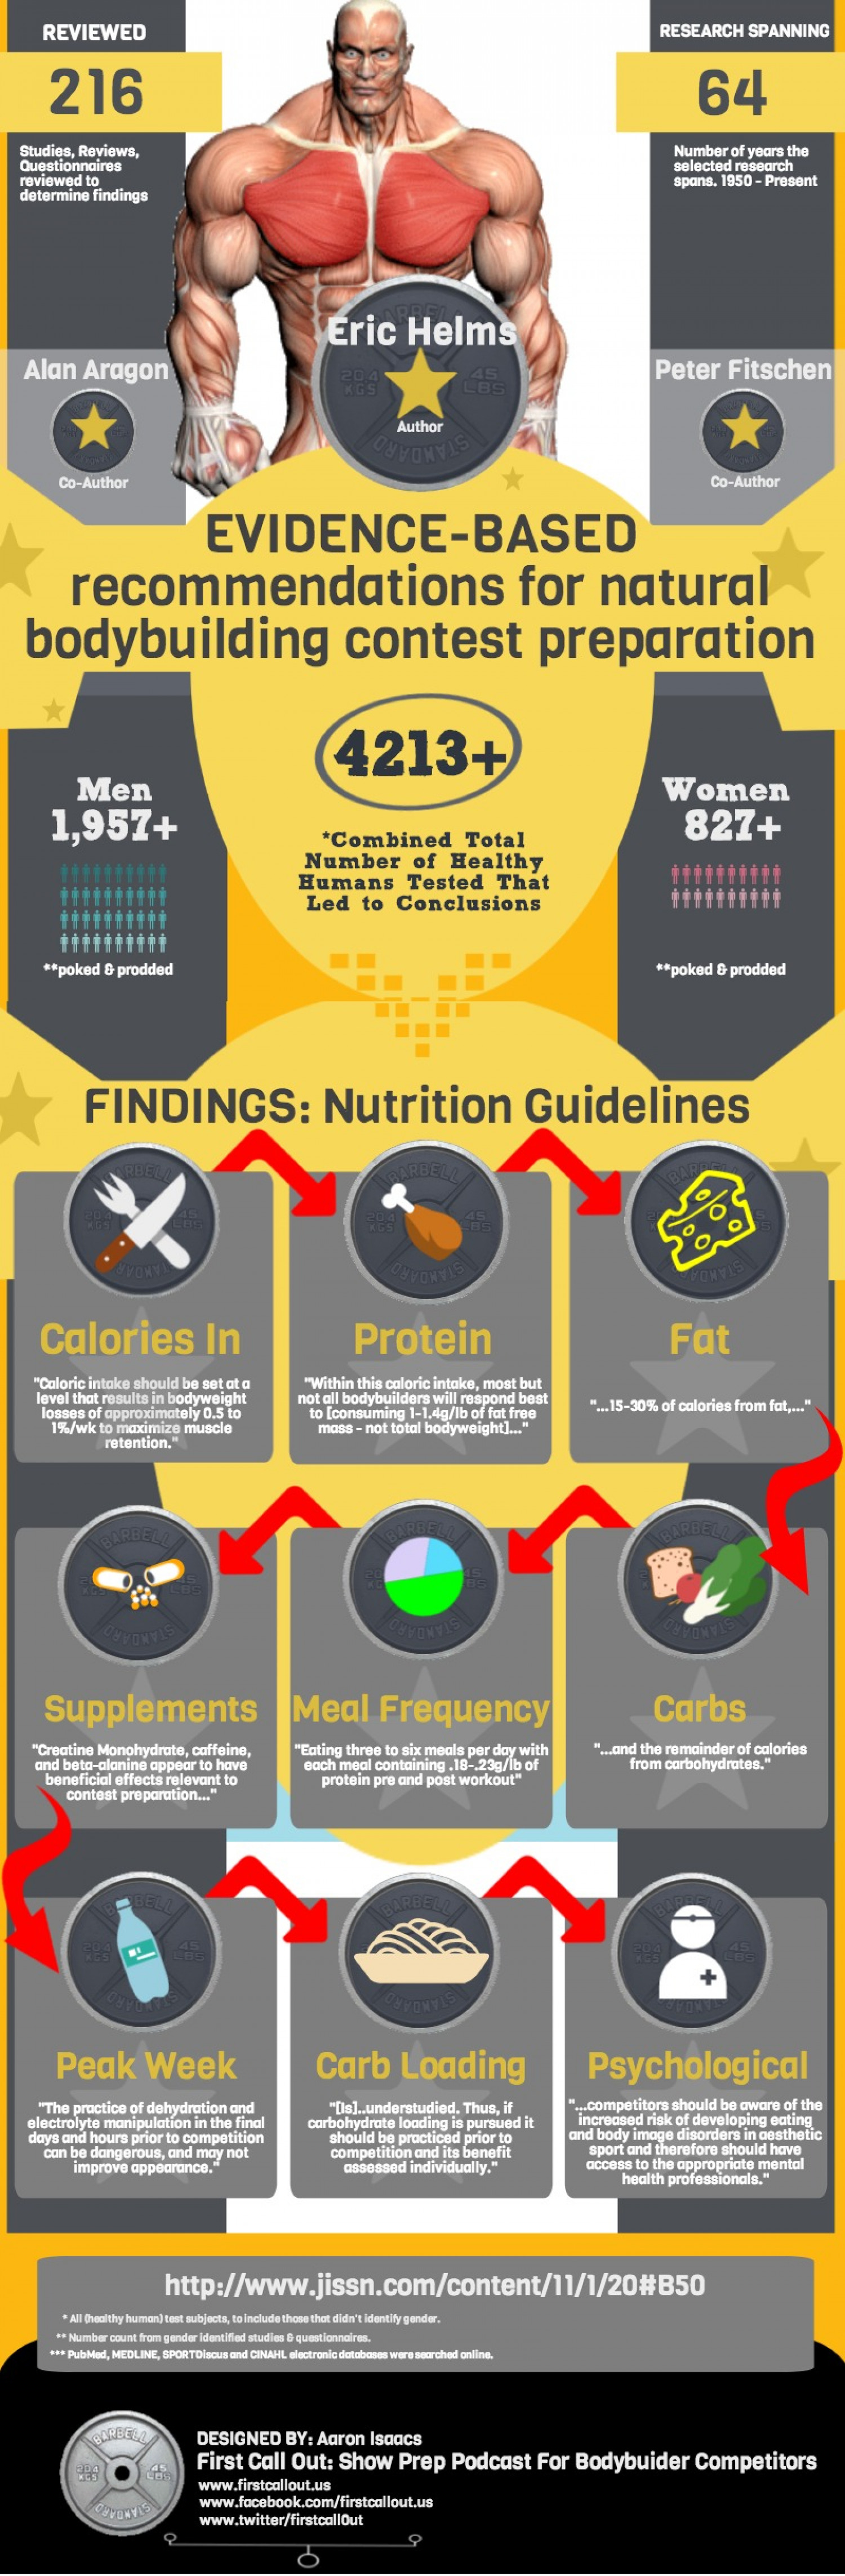 Evidence-Based Recommendations for Natural Bodybuilding Contest Competitors Infographic